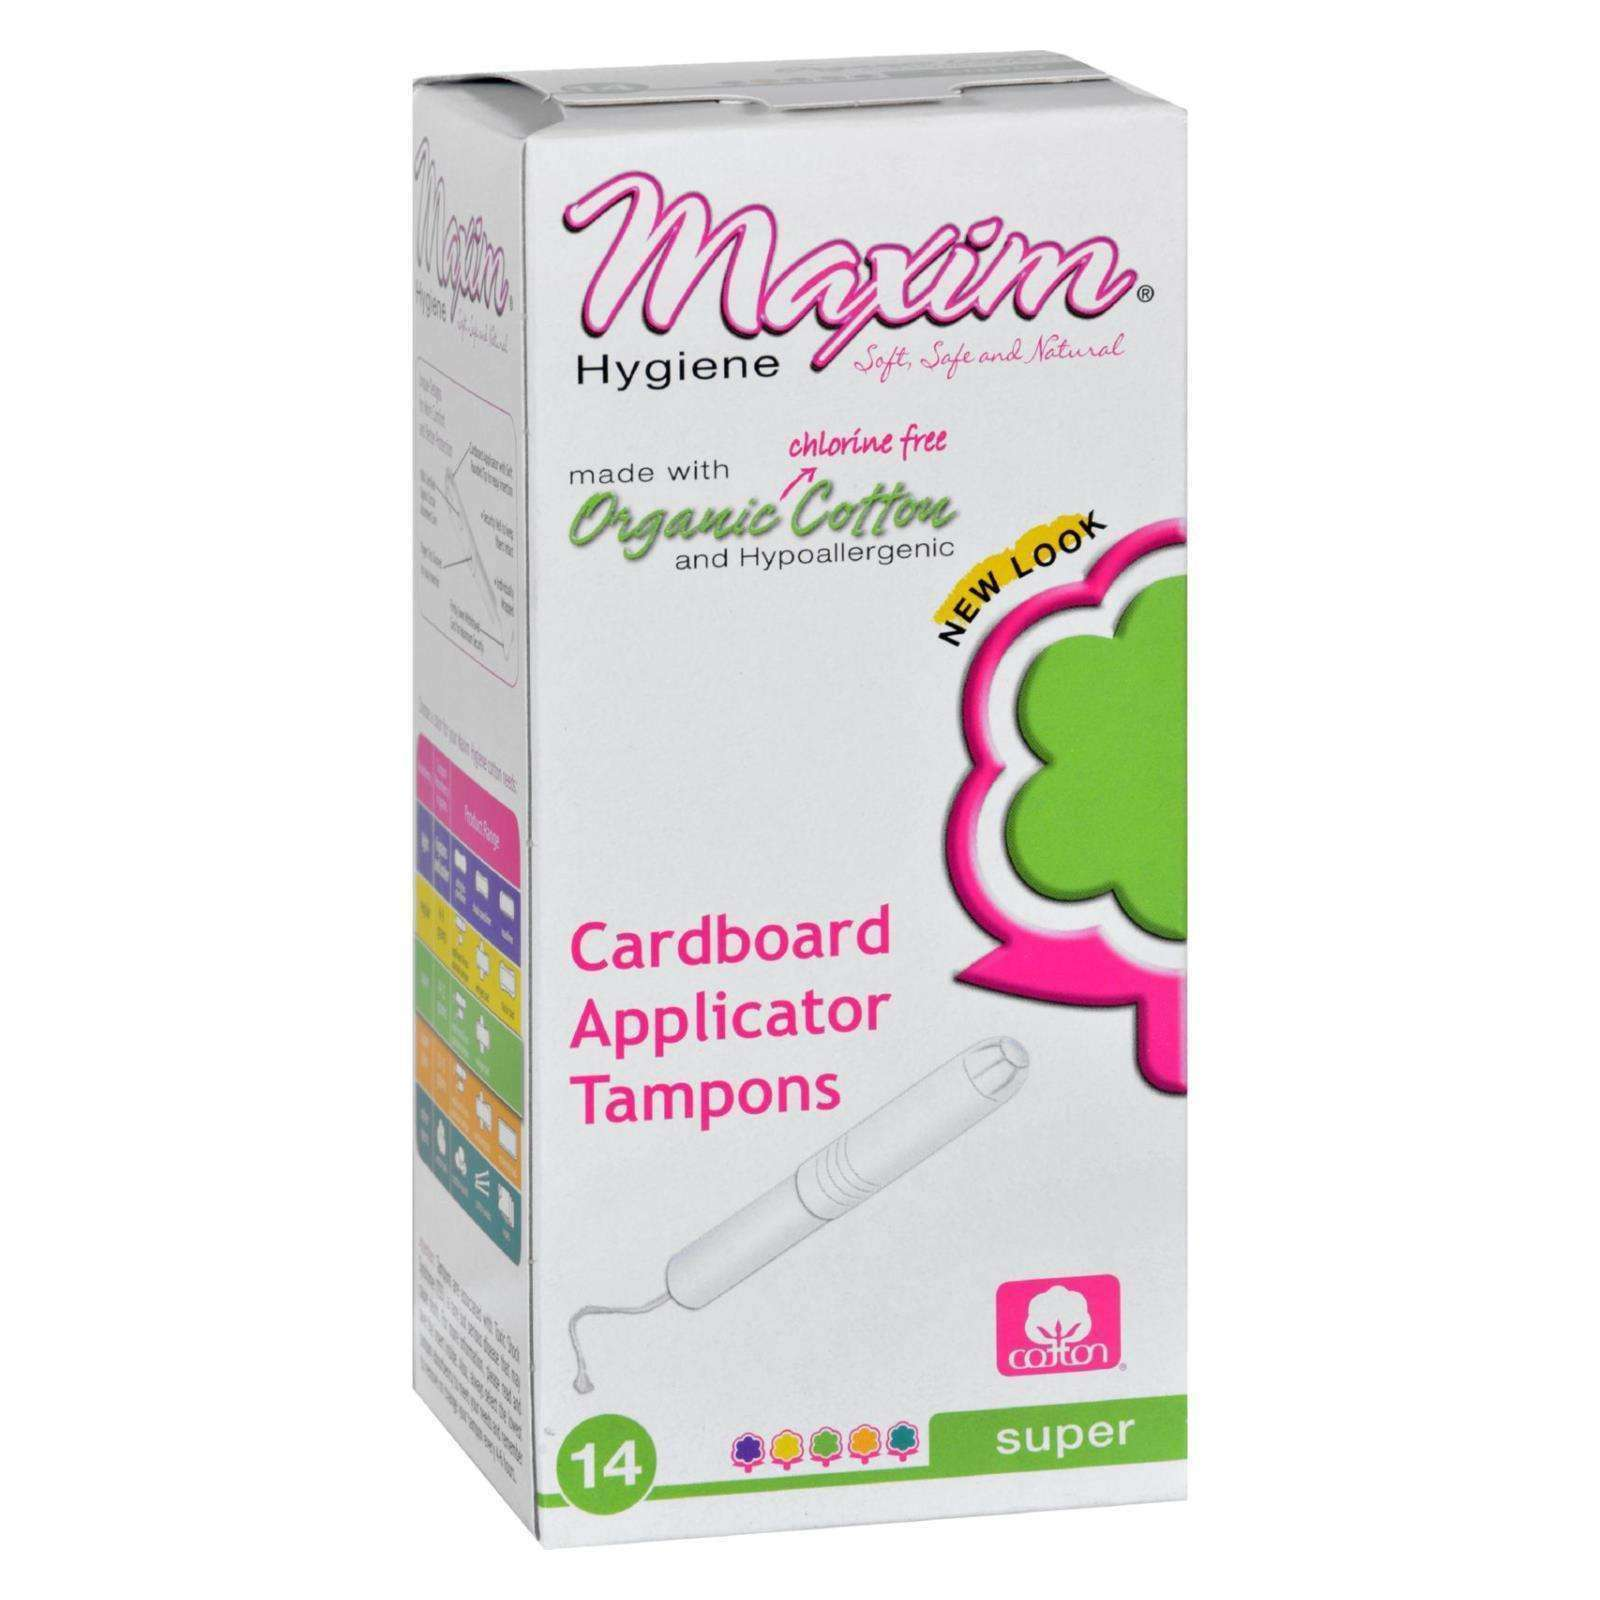 Maxim Hygiene Products Tampons - Organic Cotton - Cardboard Applicator - Super - 14 Count - BeeGreen